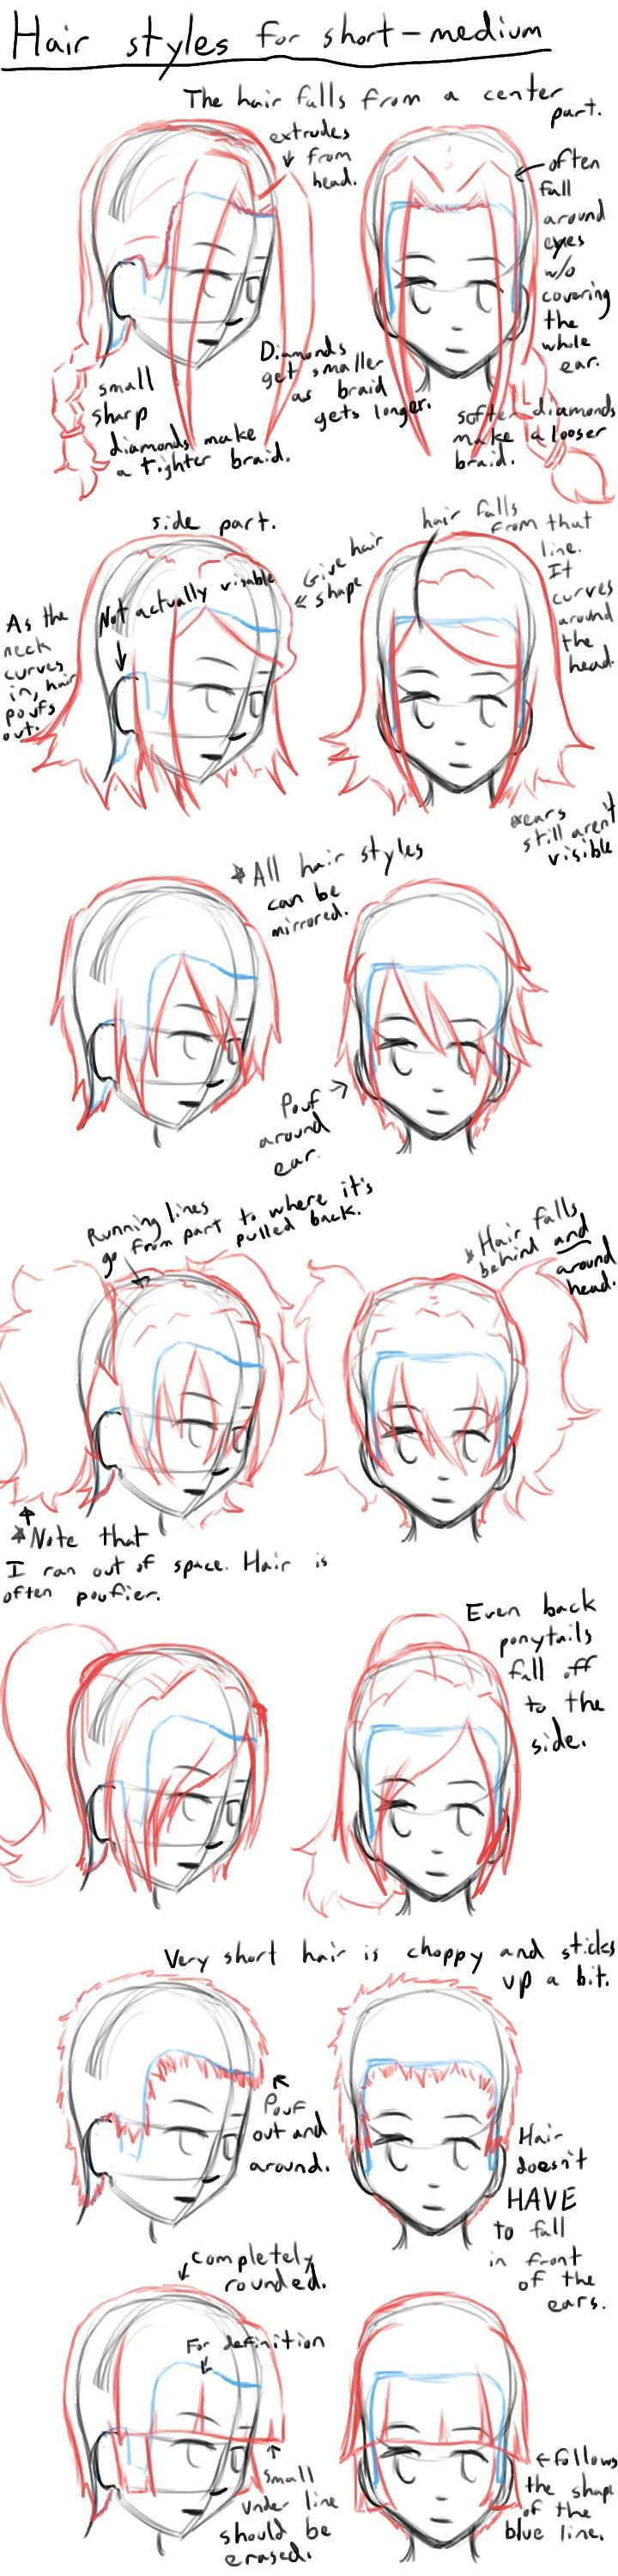 How To Draw Anime Hair Styles By Learntodrawanime On Deviantart Drawing Hair Tutorial Anime Drawings How To Draw Hair